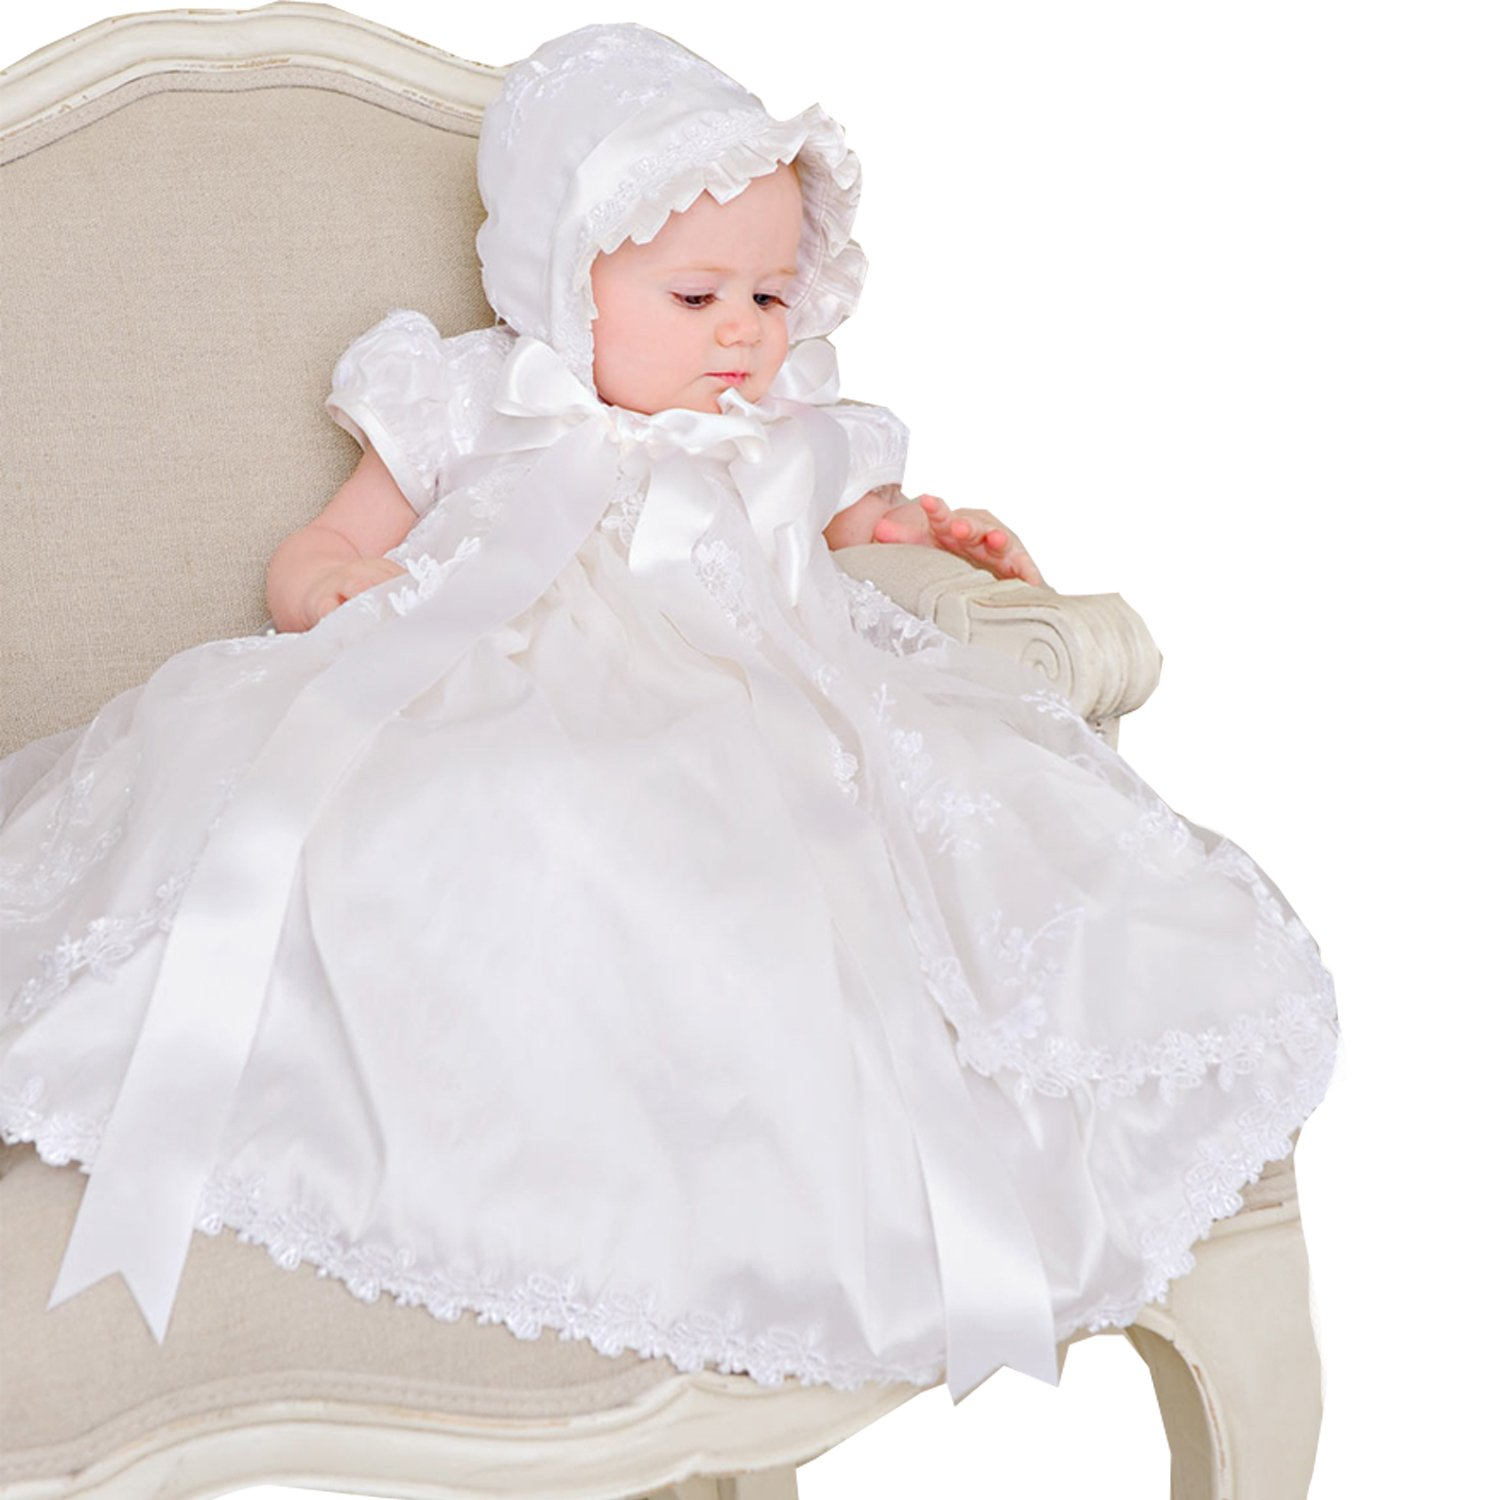 dressvip Embroidered Christening Dress Floor Length for Baby Girls